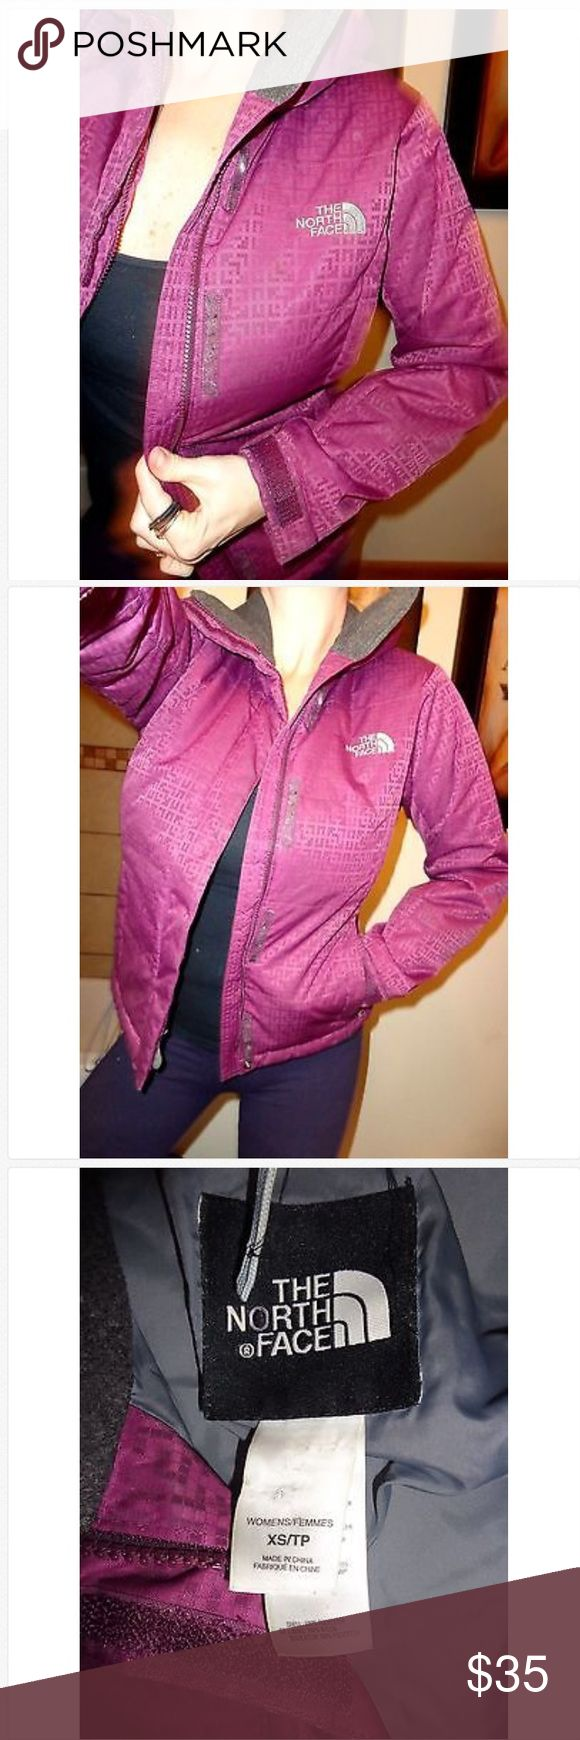 The North Face Long Sleeve Puffer Full Zip Jacket! Ladies The North Face Long Sleeve Puffer Maroon Full Zip Jacket! Size Ladies XS Good Used!! The North Face Jackets & Coats Puffers